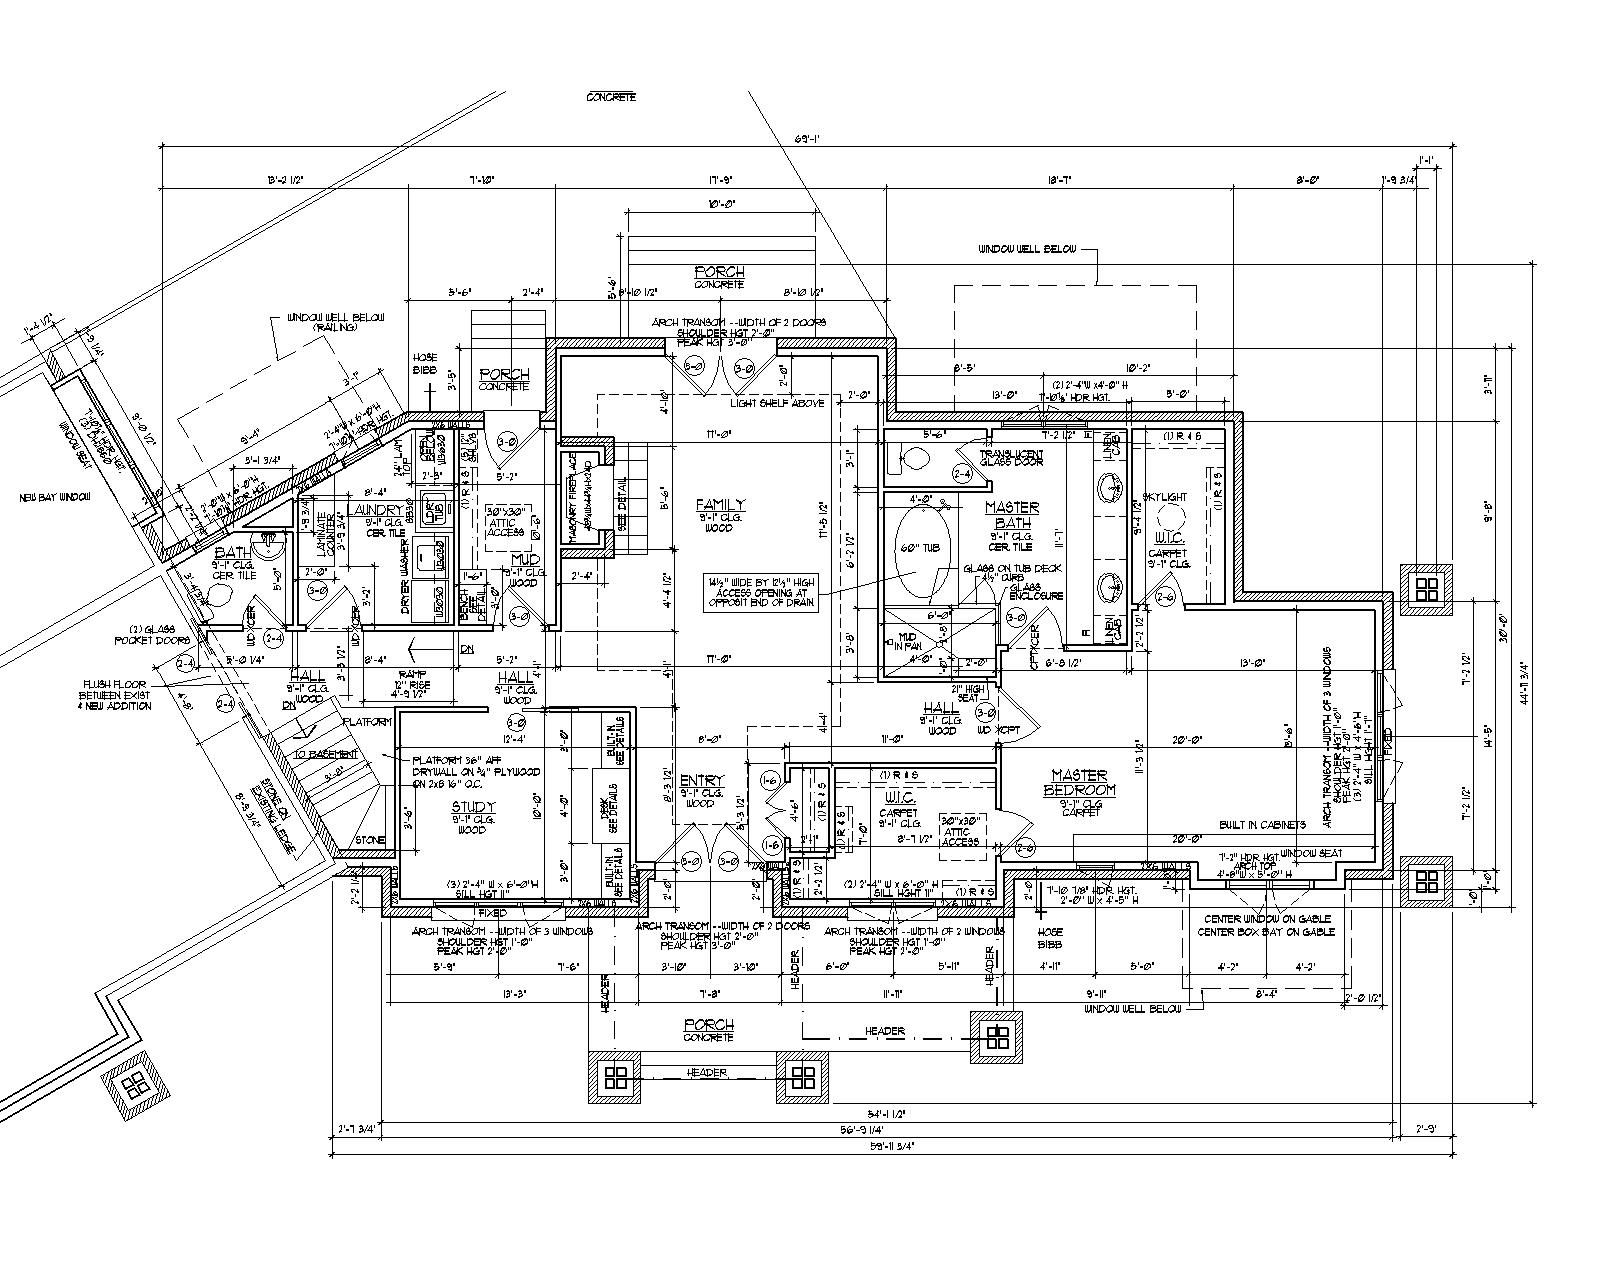 2d autocad house plans residential building drawings cad for Floor plan drafting software